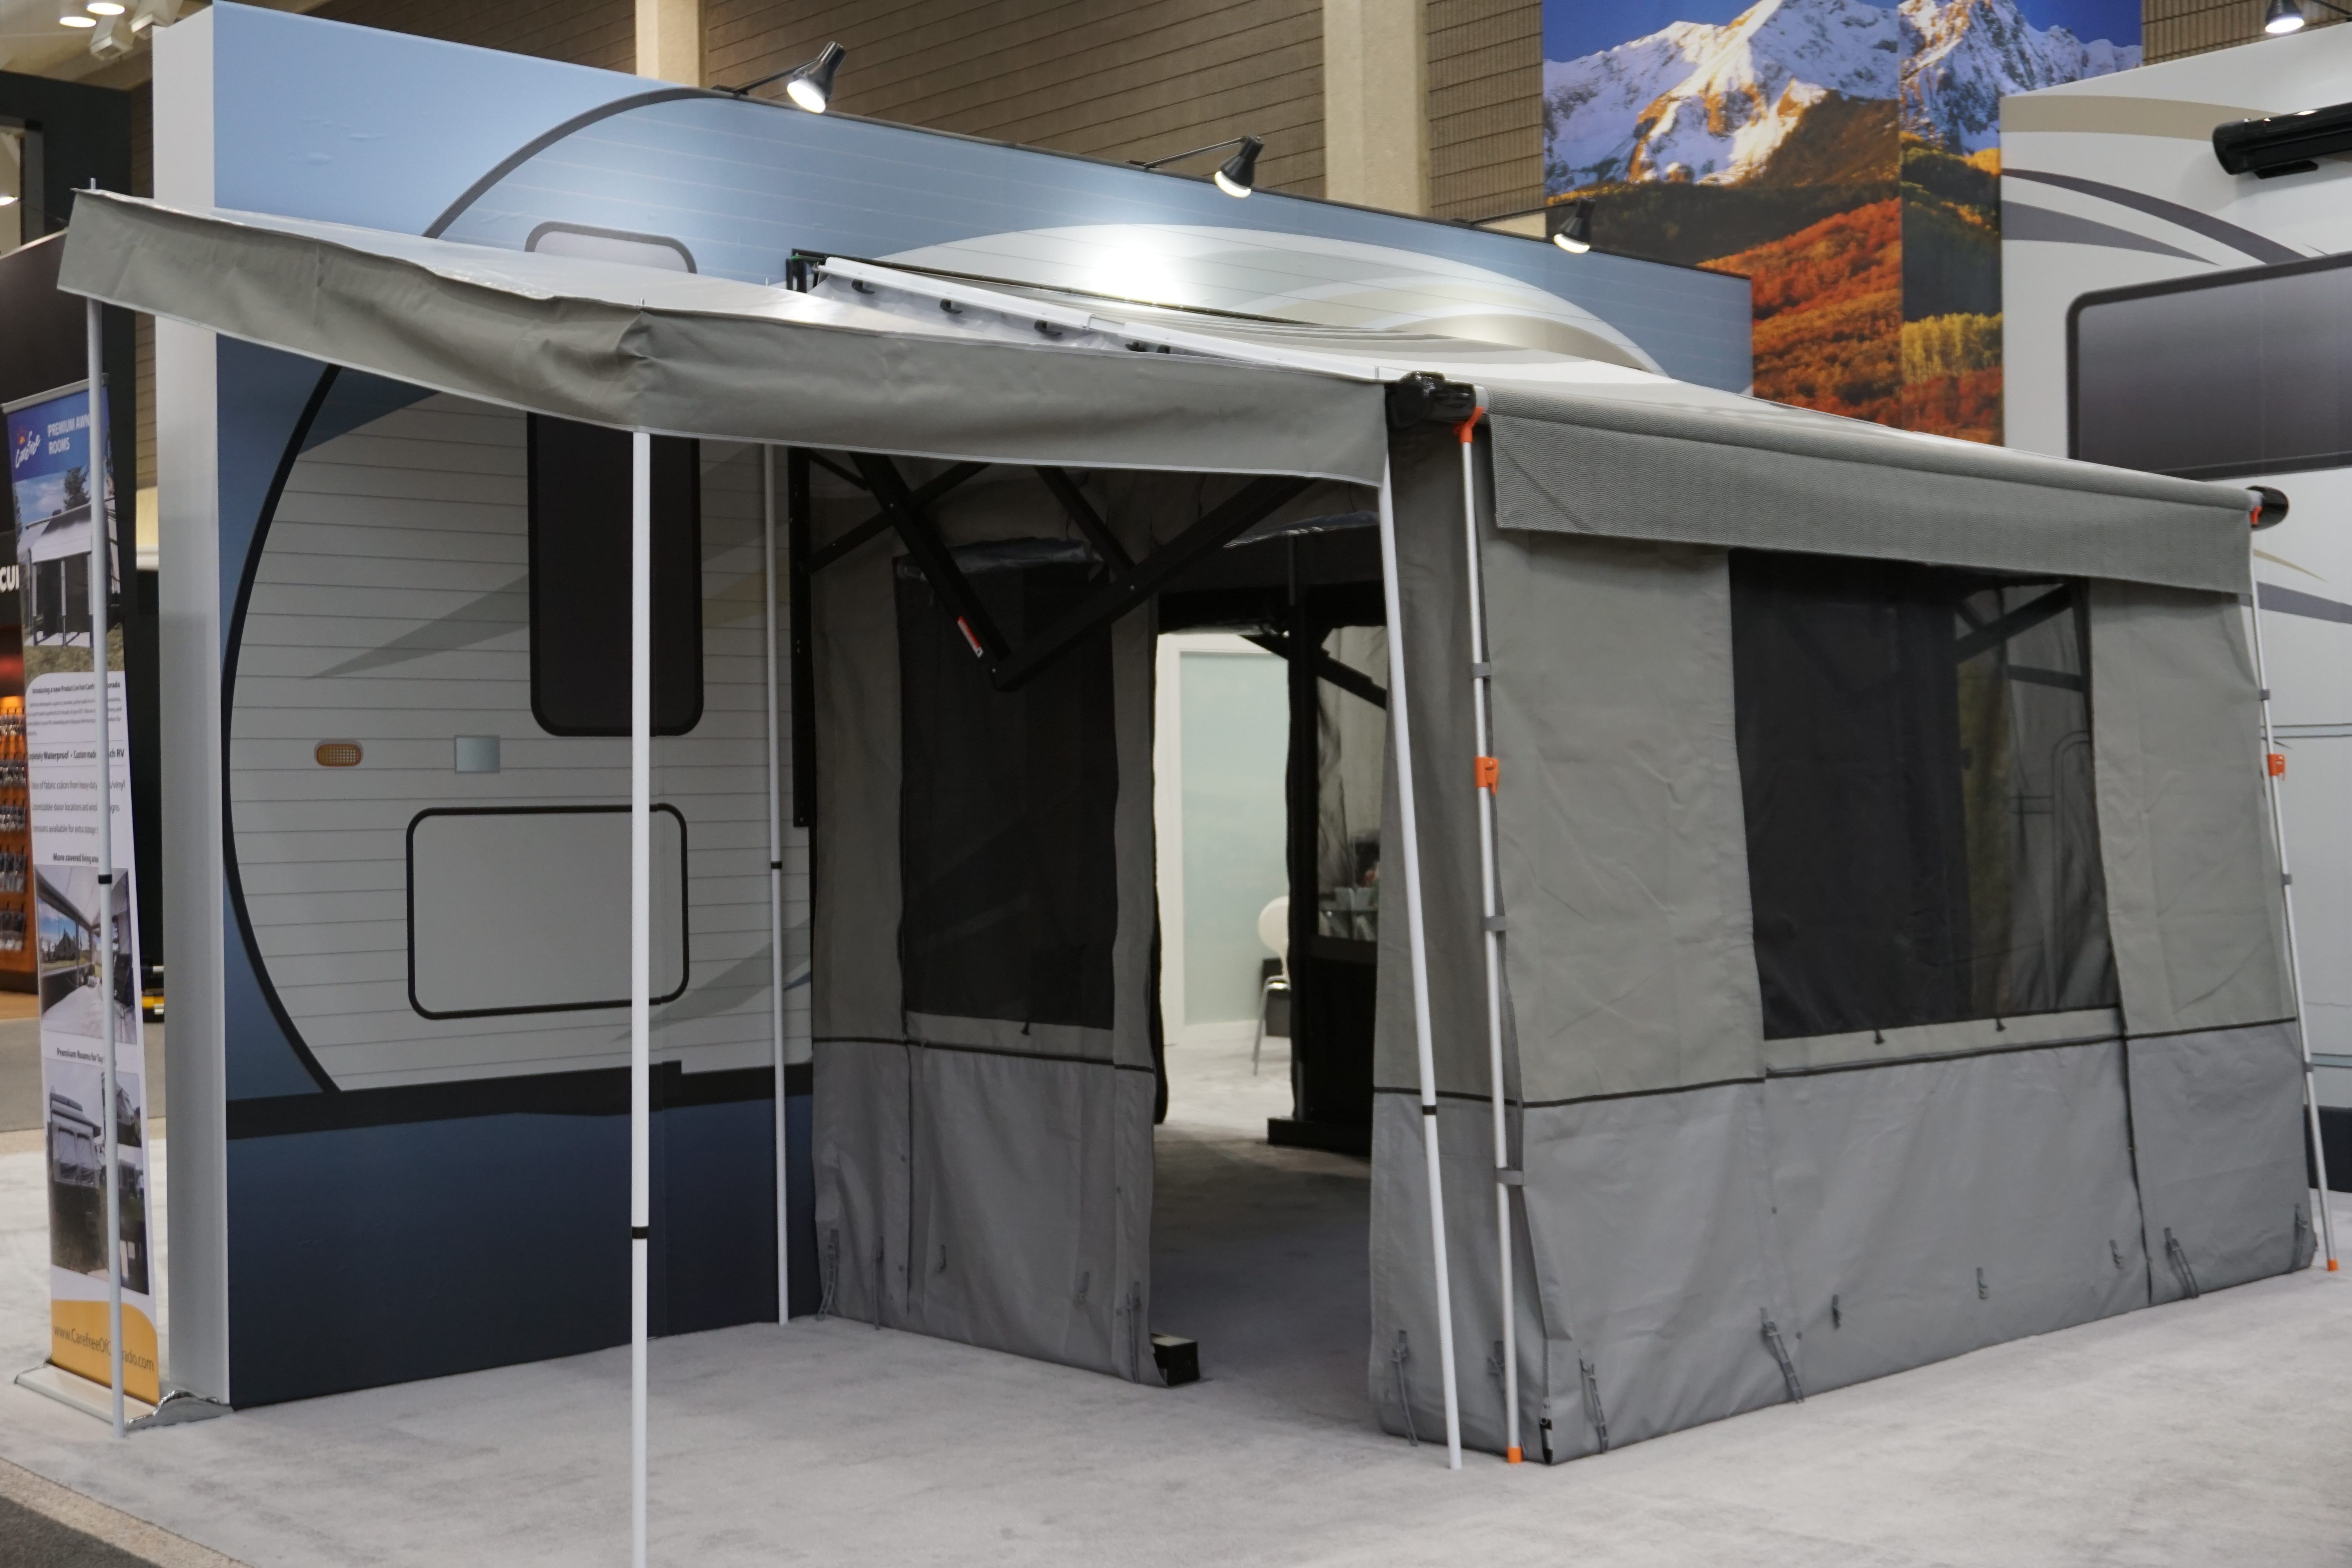 An Awning Room Is A Great Way To Add Additional Living Space Your Motorhome Or Travel Trailer Without Having Upsize RV